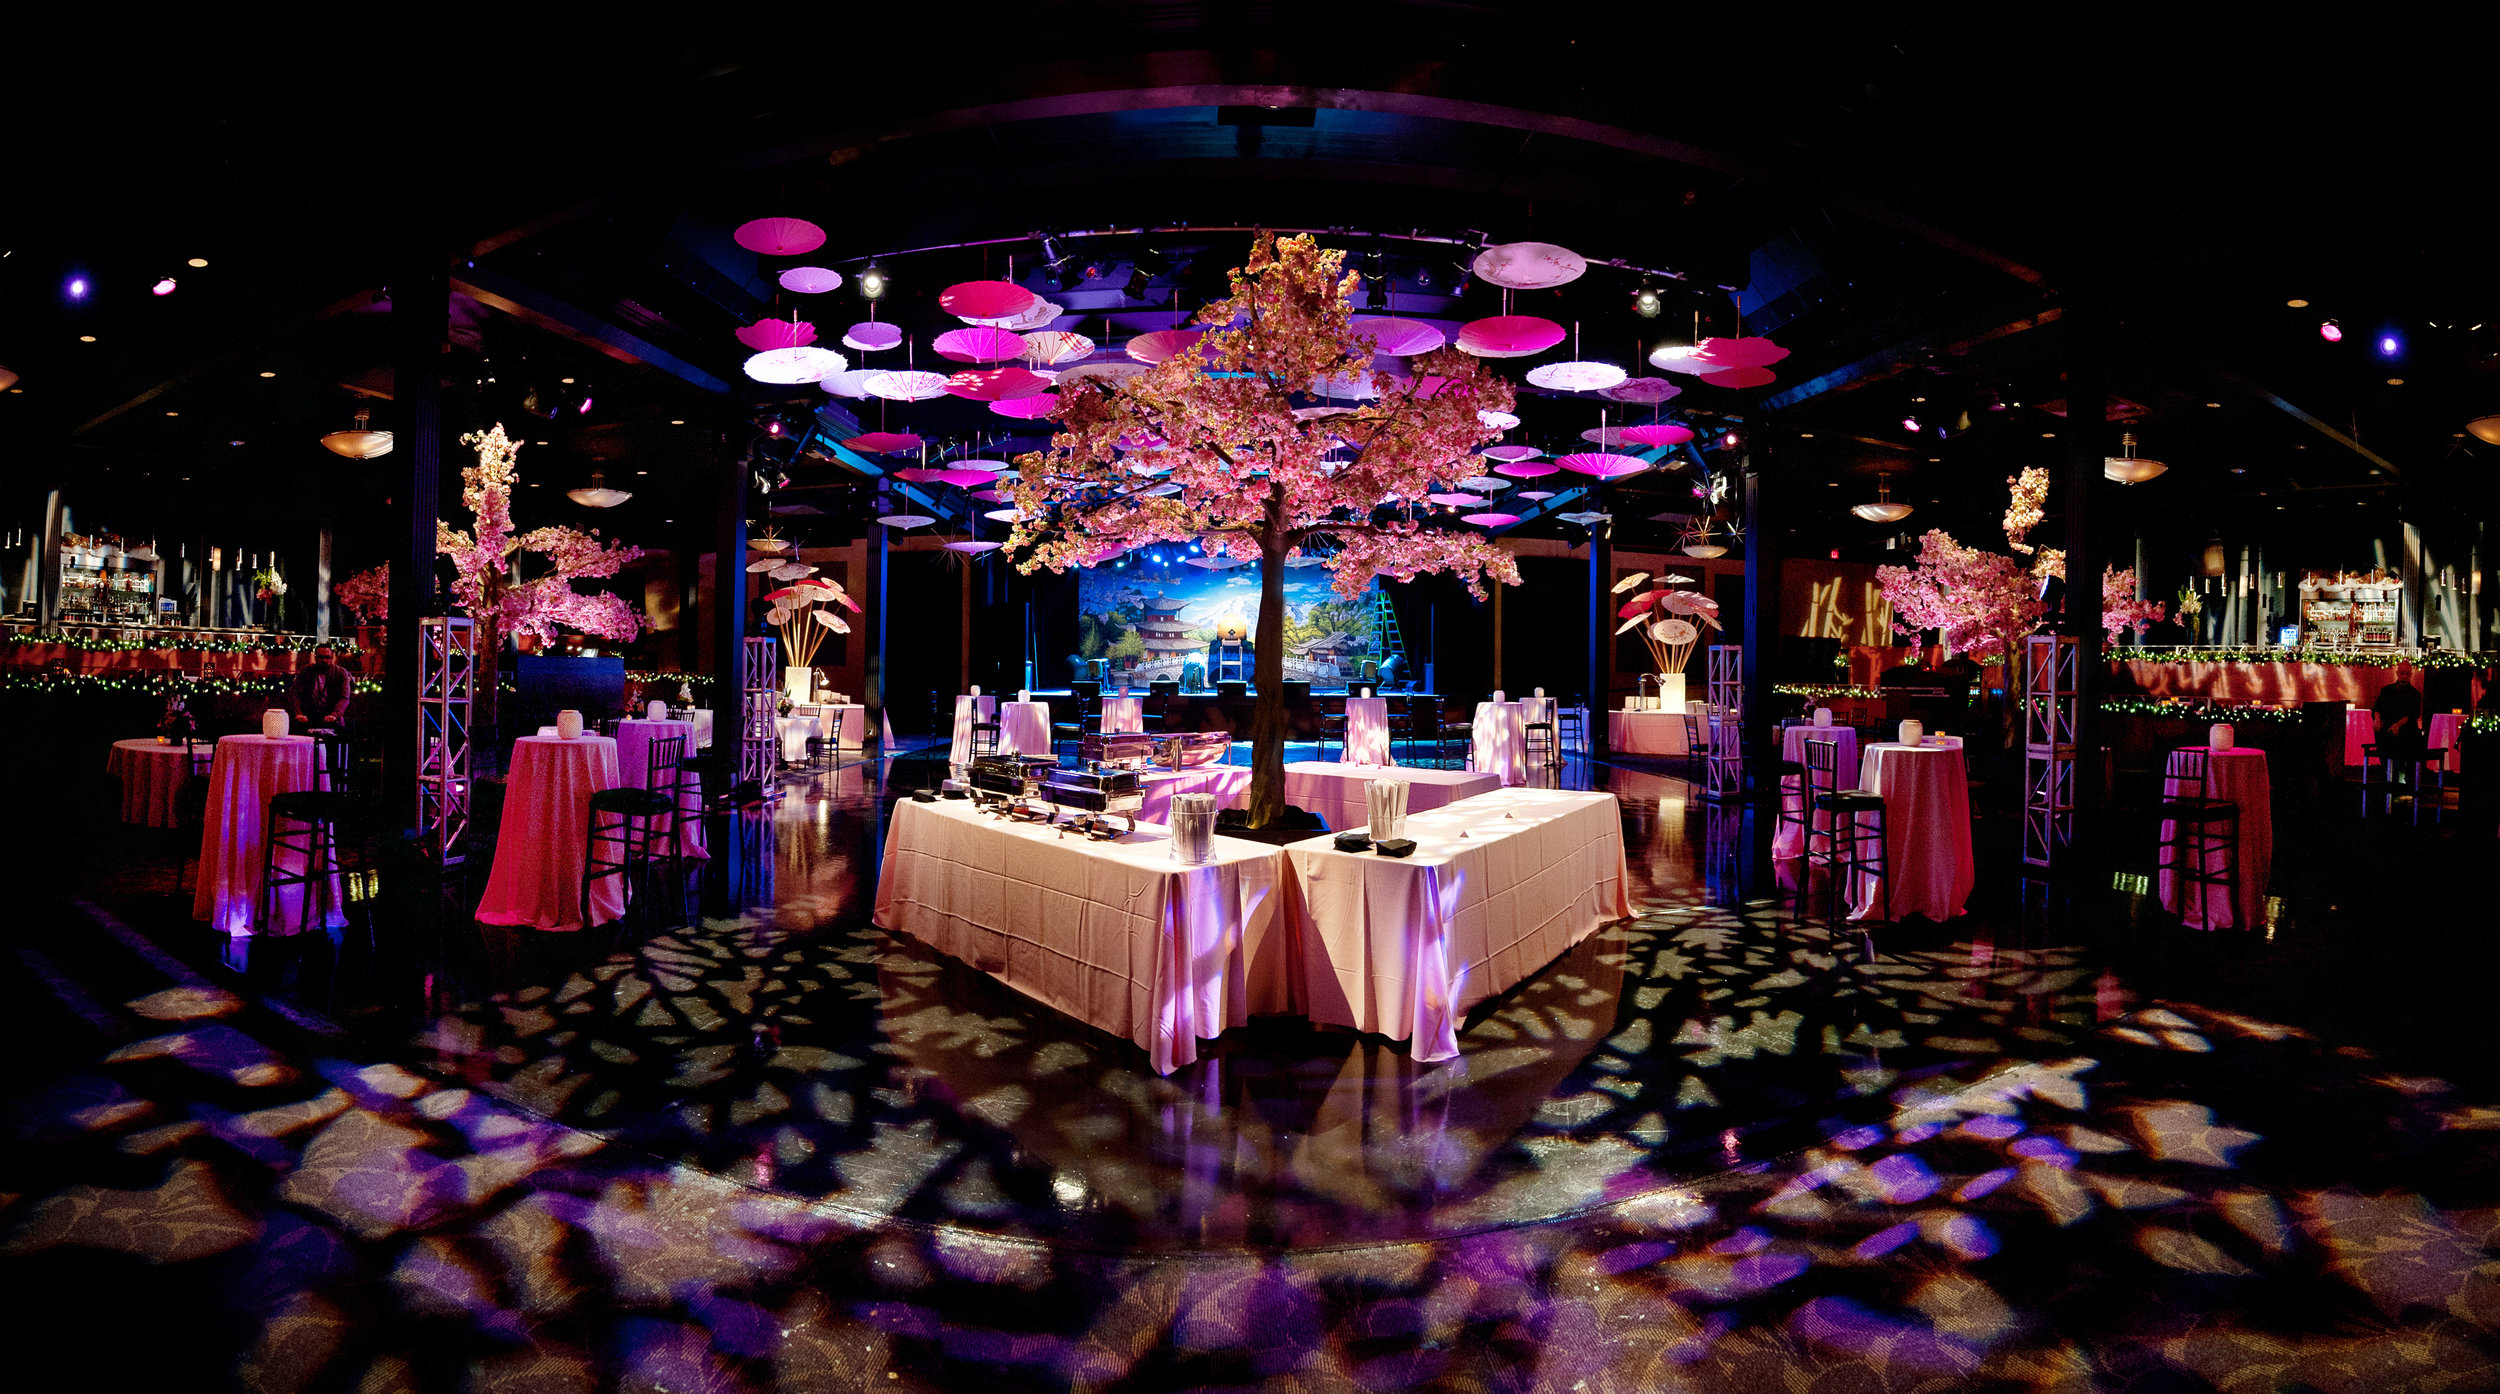 Spaces_Ballroom.01 - lightened by 20 percent.jpg